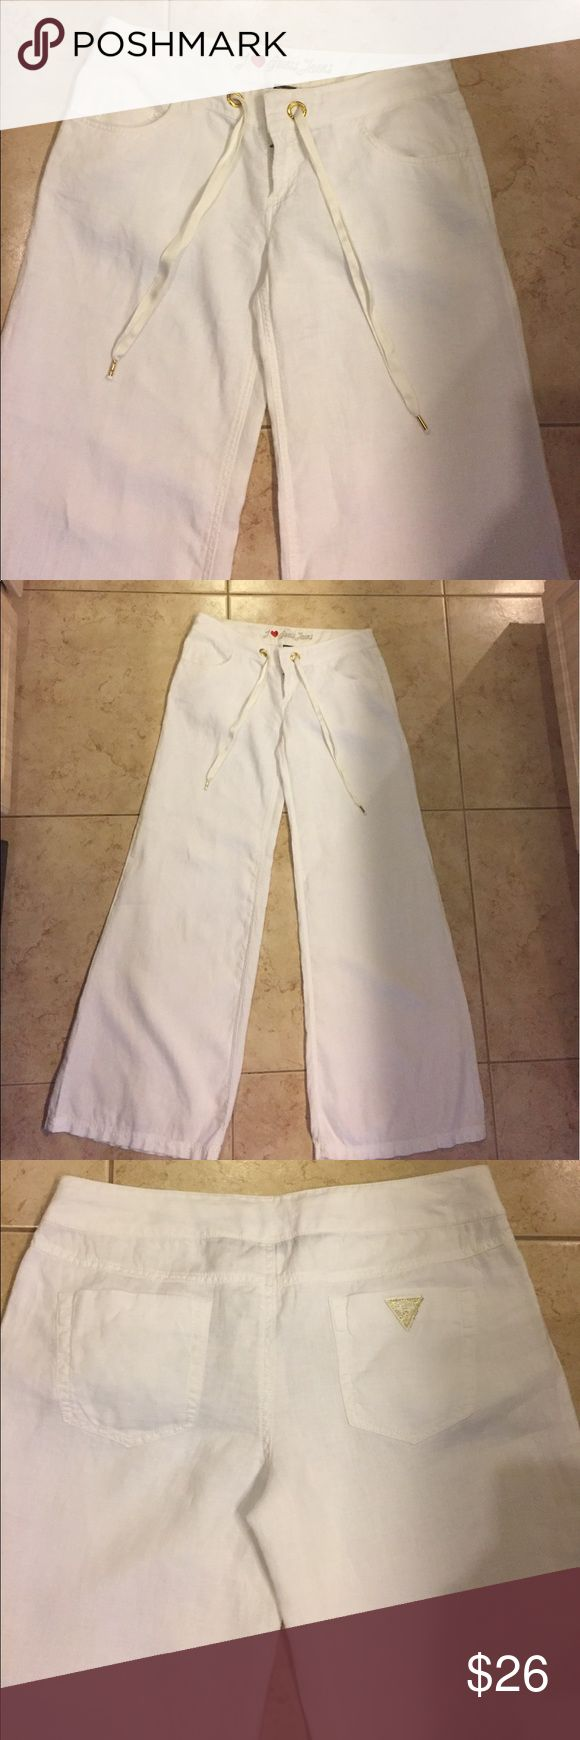 GUESS JEANS: LINEN WHITE PANTS I ❤️ GUESS JEANS :)  SCREAM SUMMER!!  WE ALL LOVE Cool Linen:)   A Beautiful style Pants,  comfortable and a Fun Pants!  100% Linen. With that Gold accent!  Size 29, inseam 32 1/2 inches. Washable) Great Final Price $26.00...Contact me if you have any questions. Guess Pants